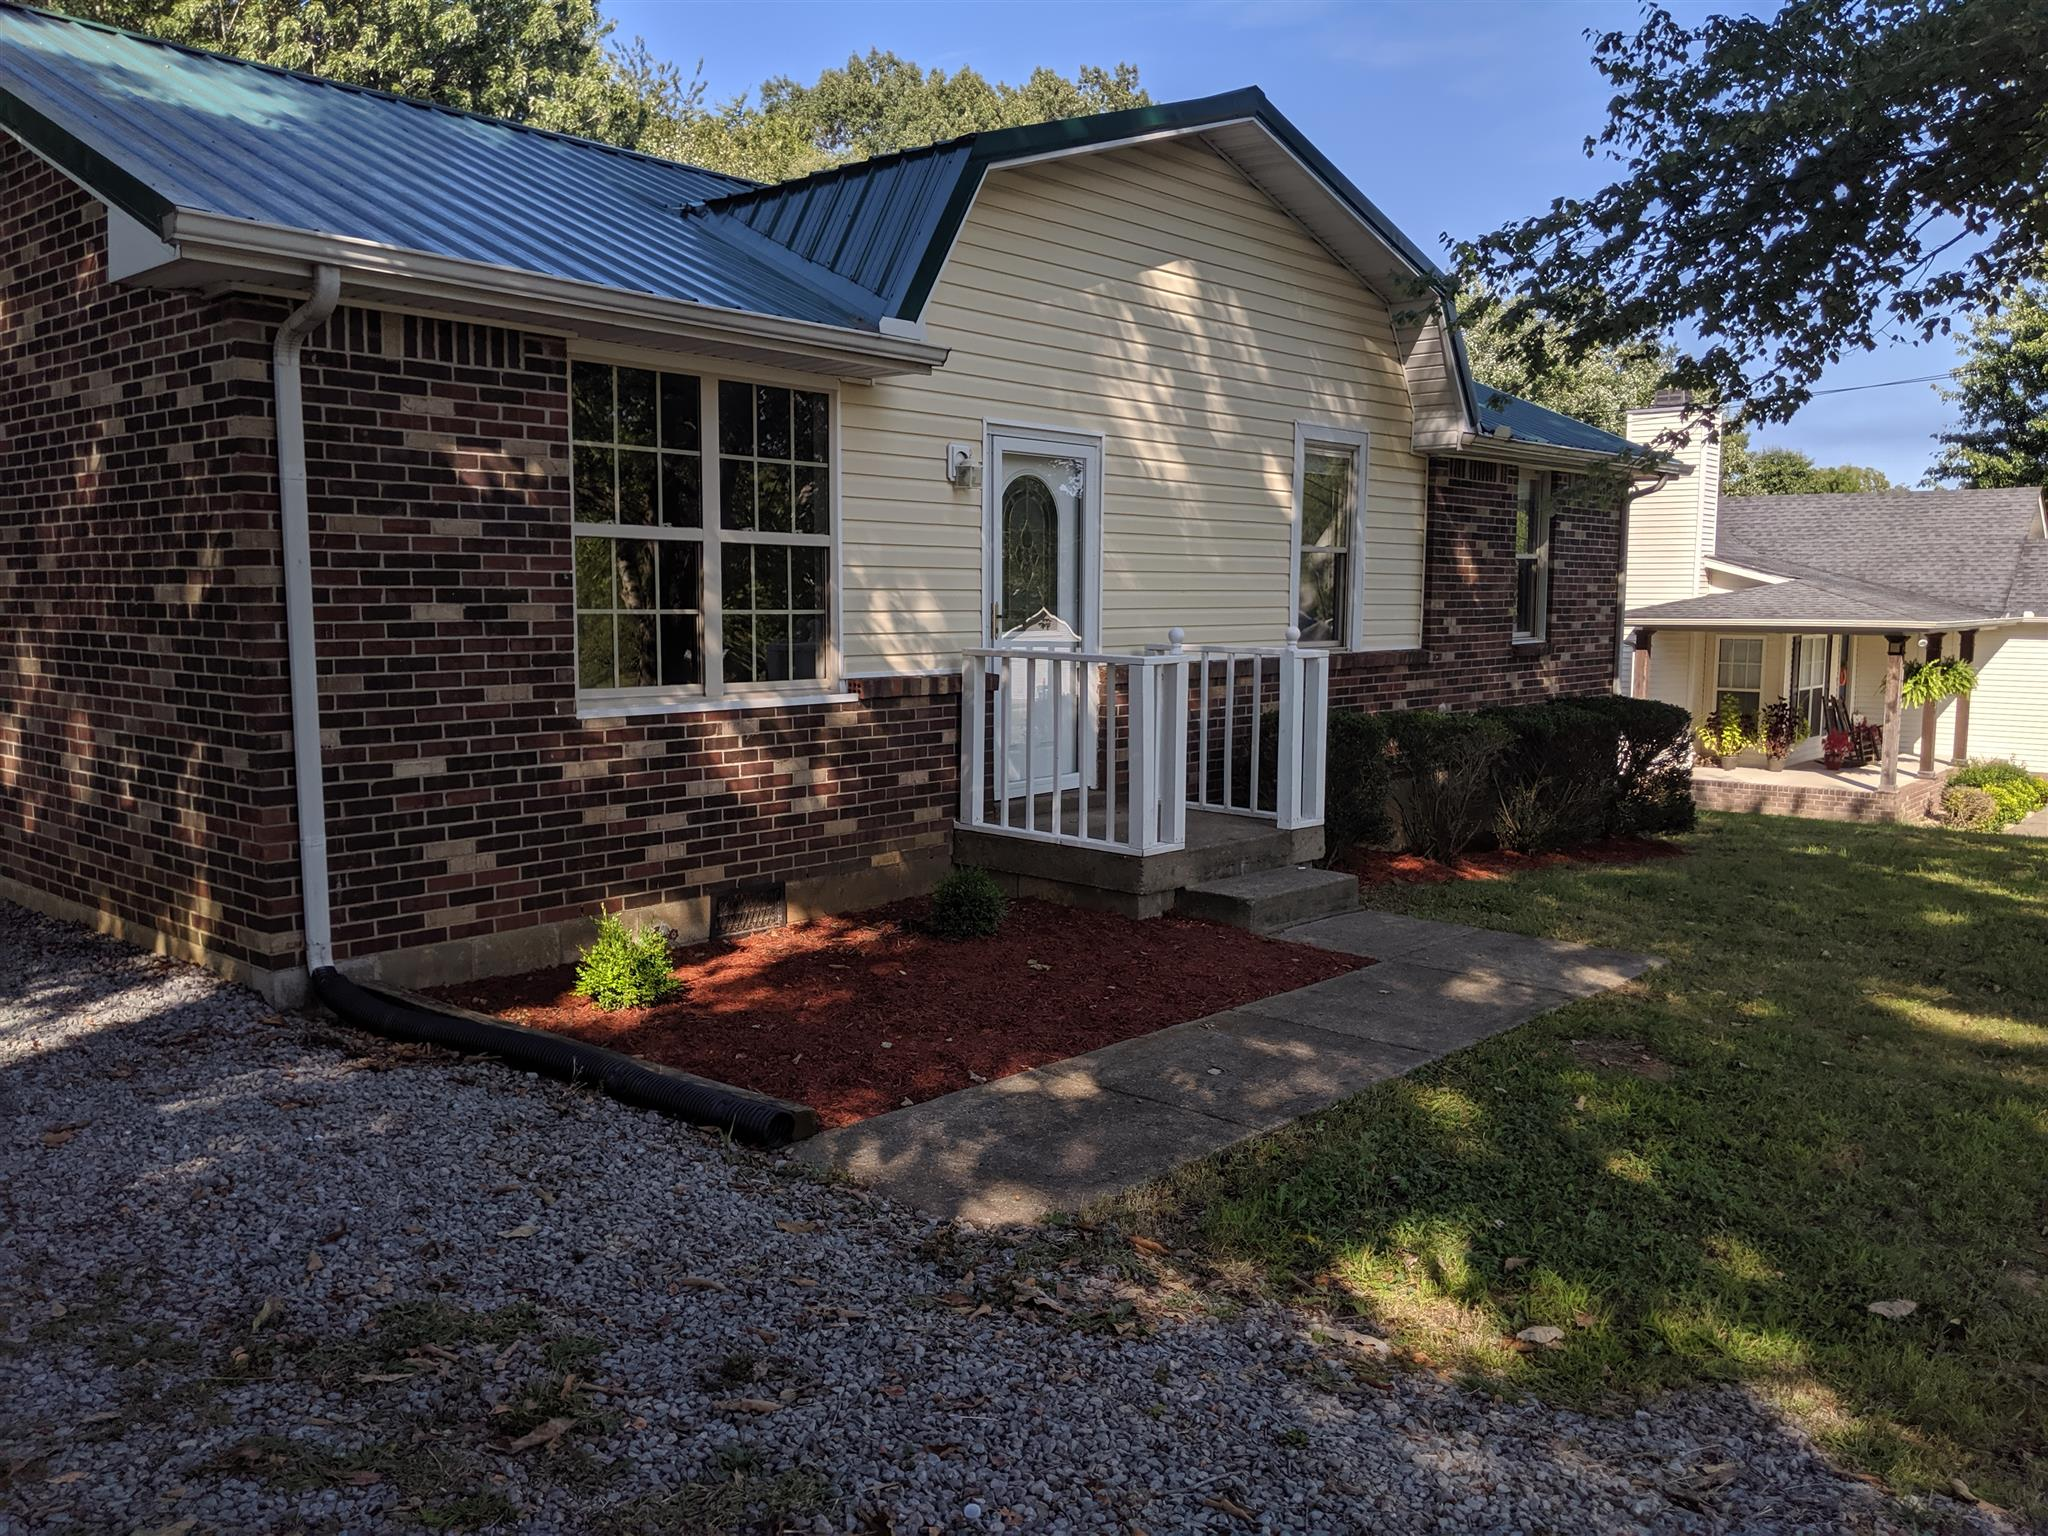 3 BR/1.5 BA Brick Home With 2 Car Carport And Spacious Back Yard!  210 Staggs Dr., Portland, TN.  37148